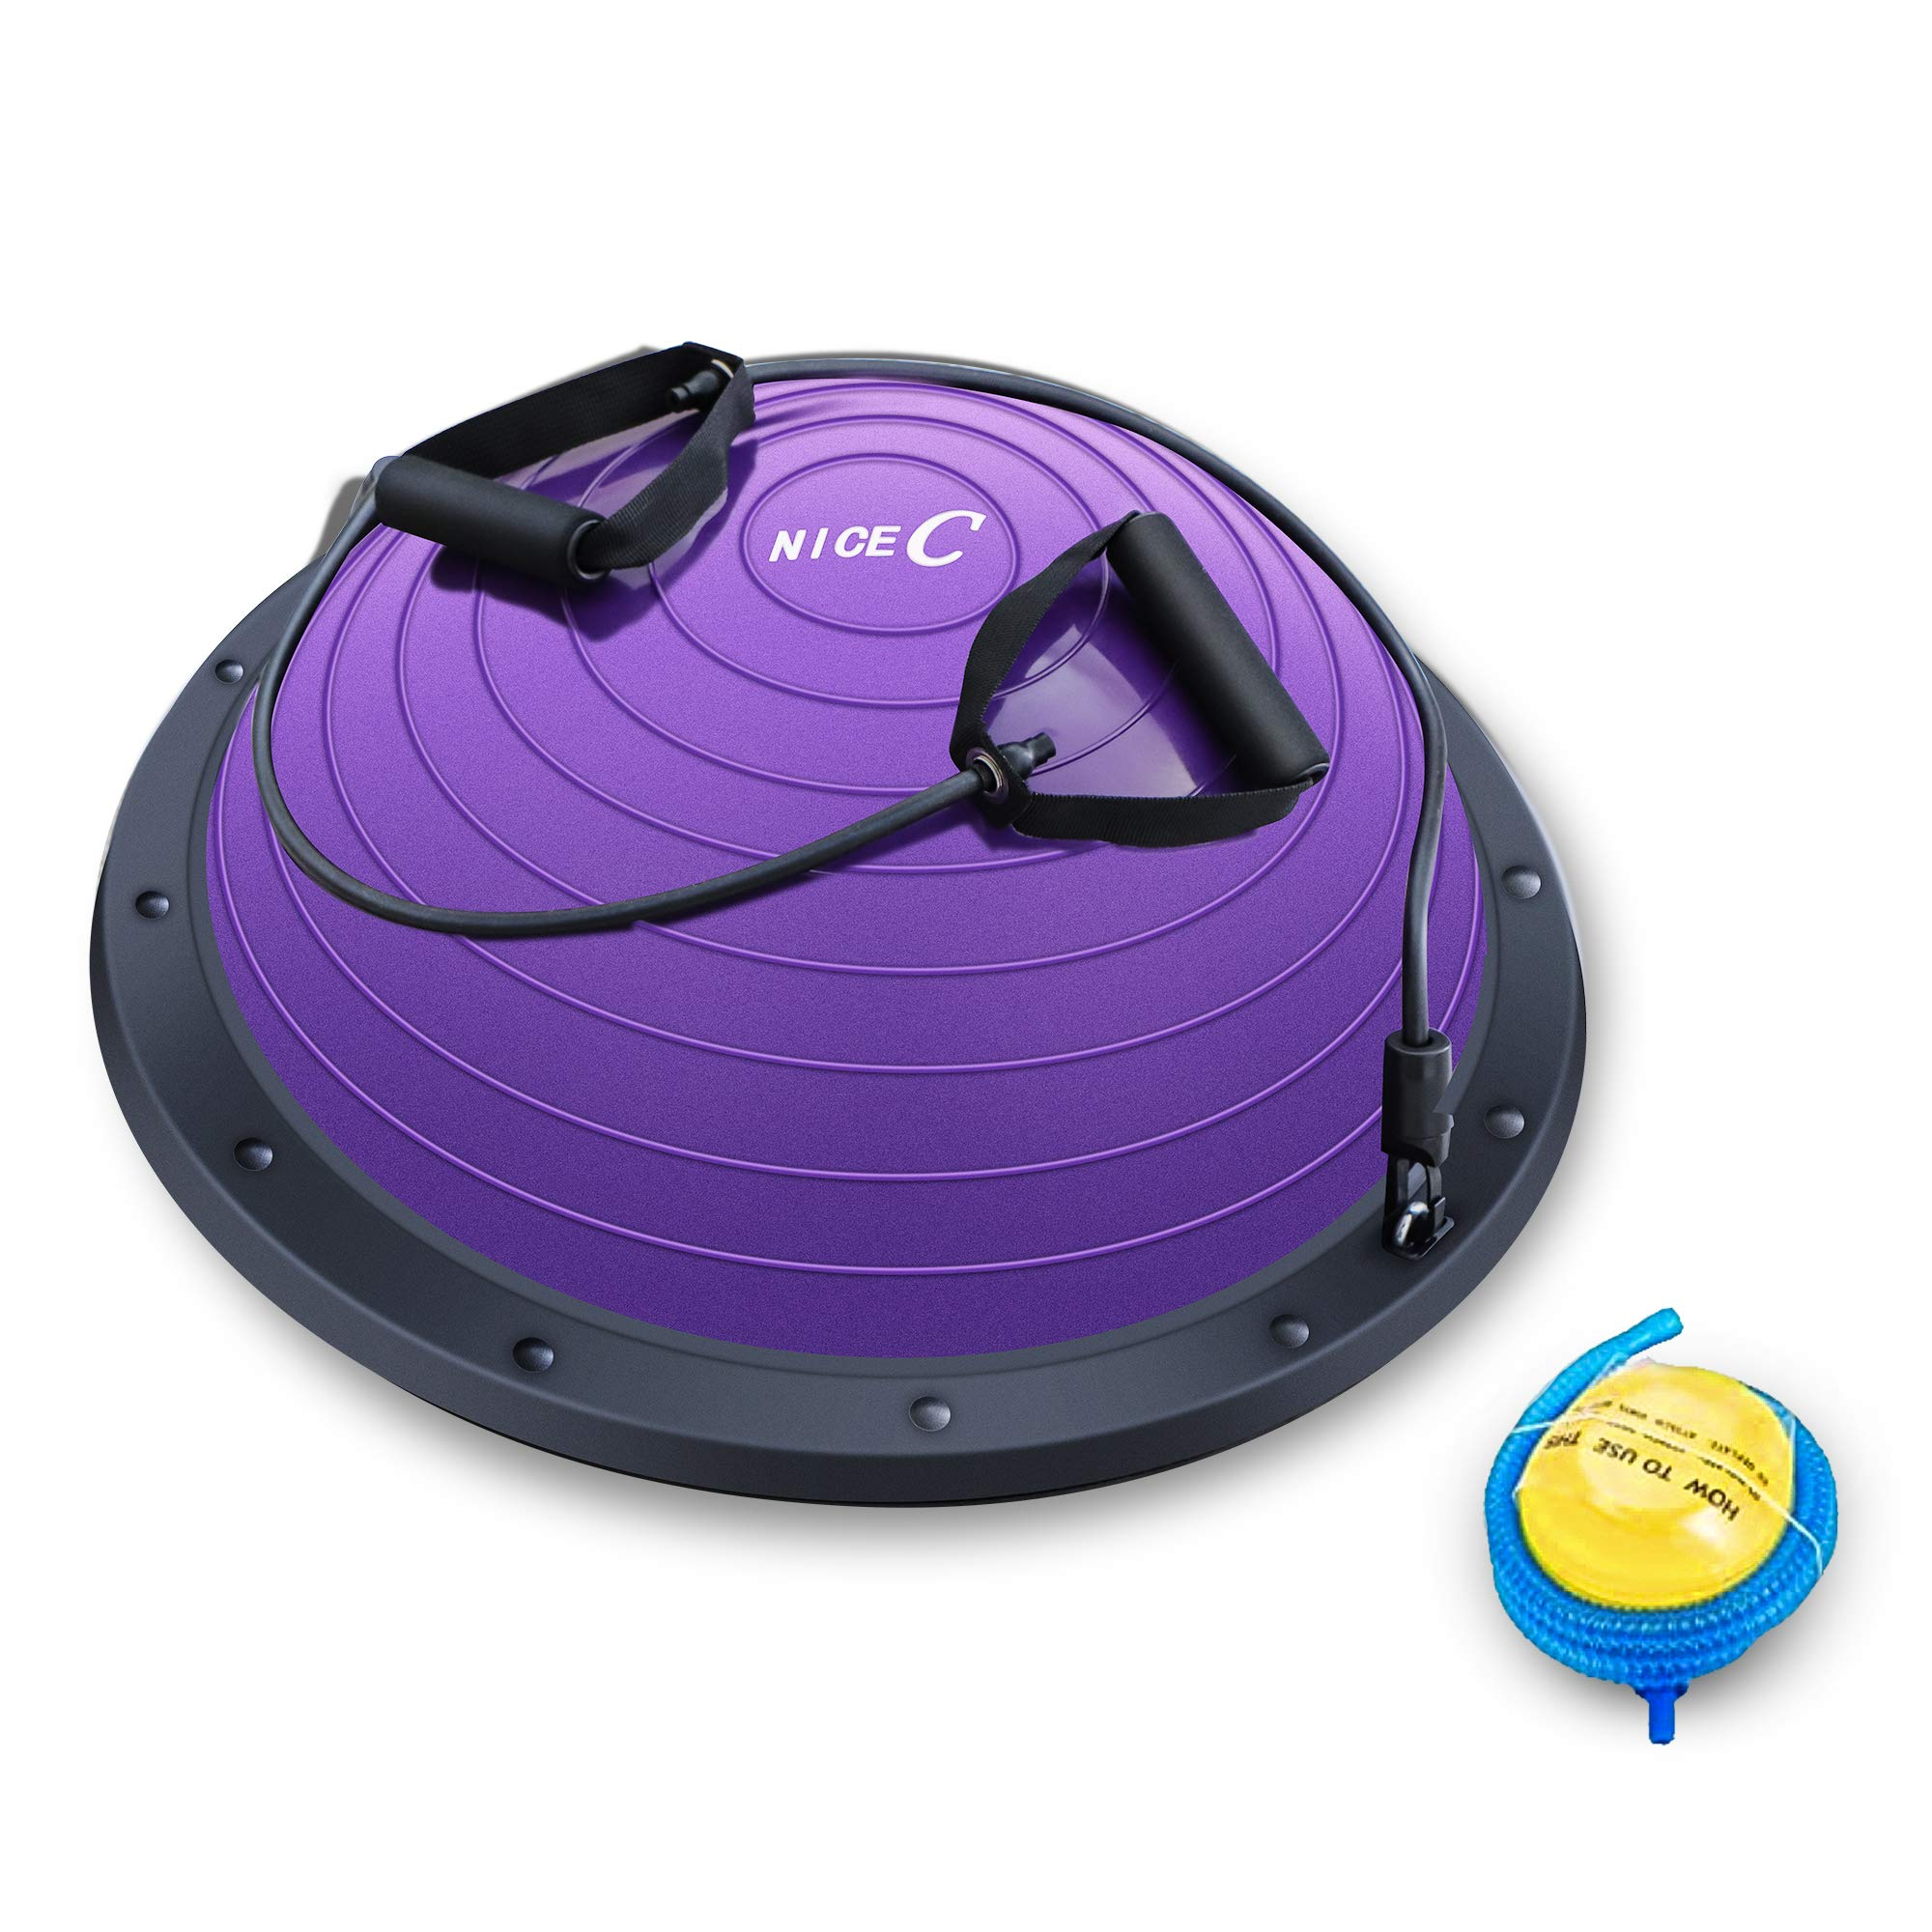 NiceC Balance Ball, Balance Trainer, Yoga (Purple)